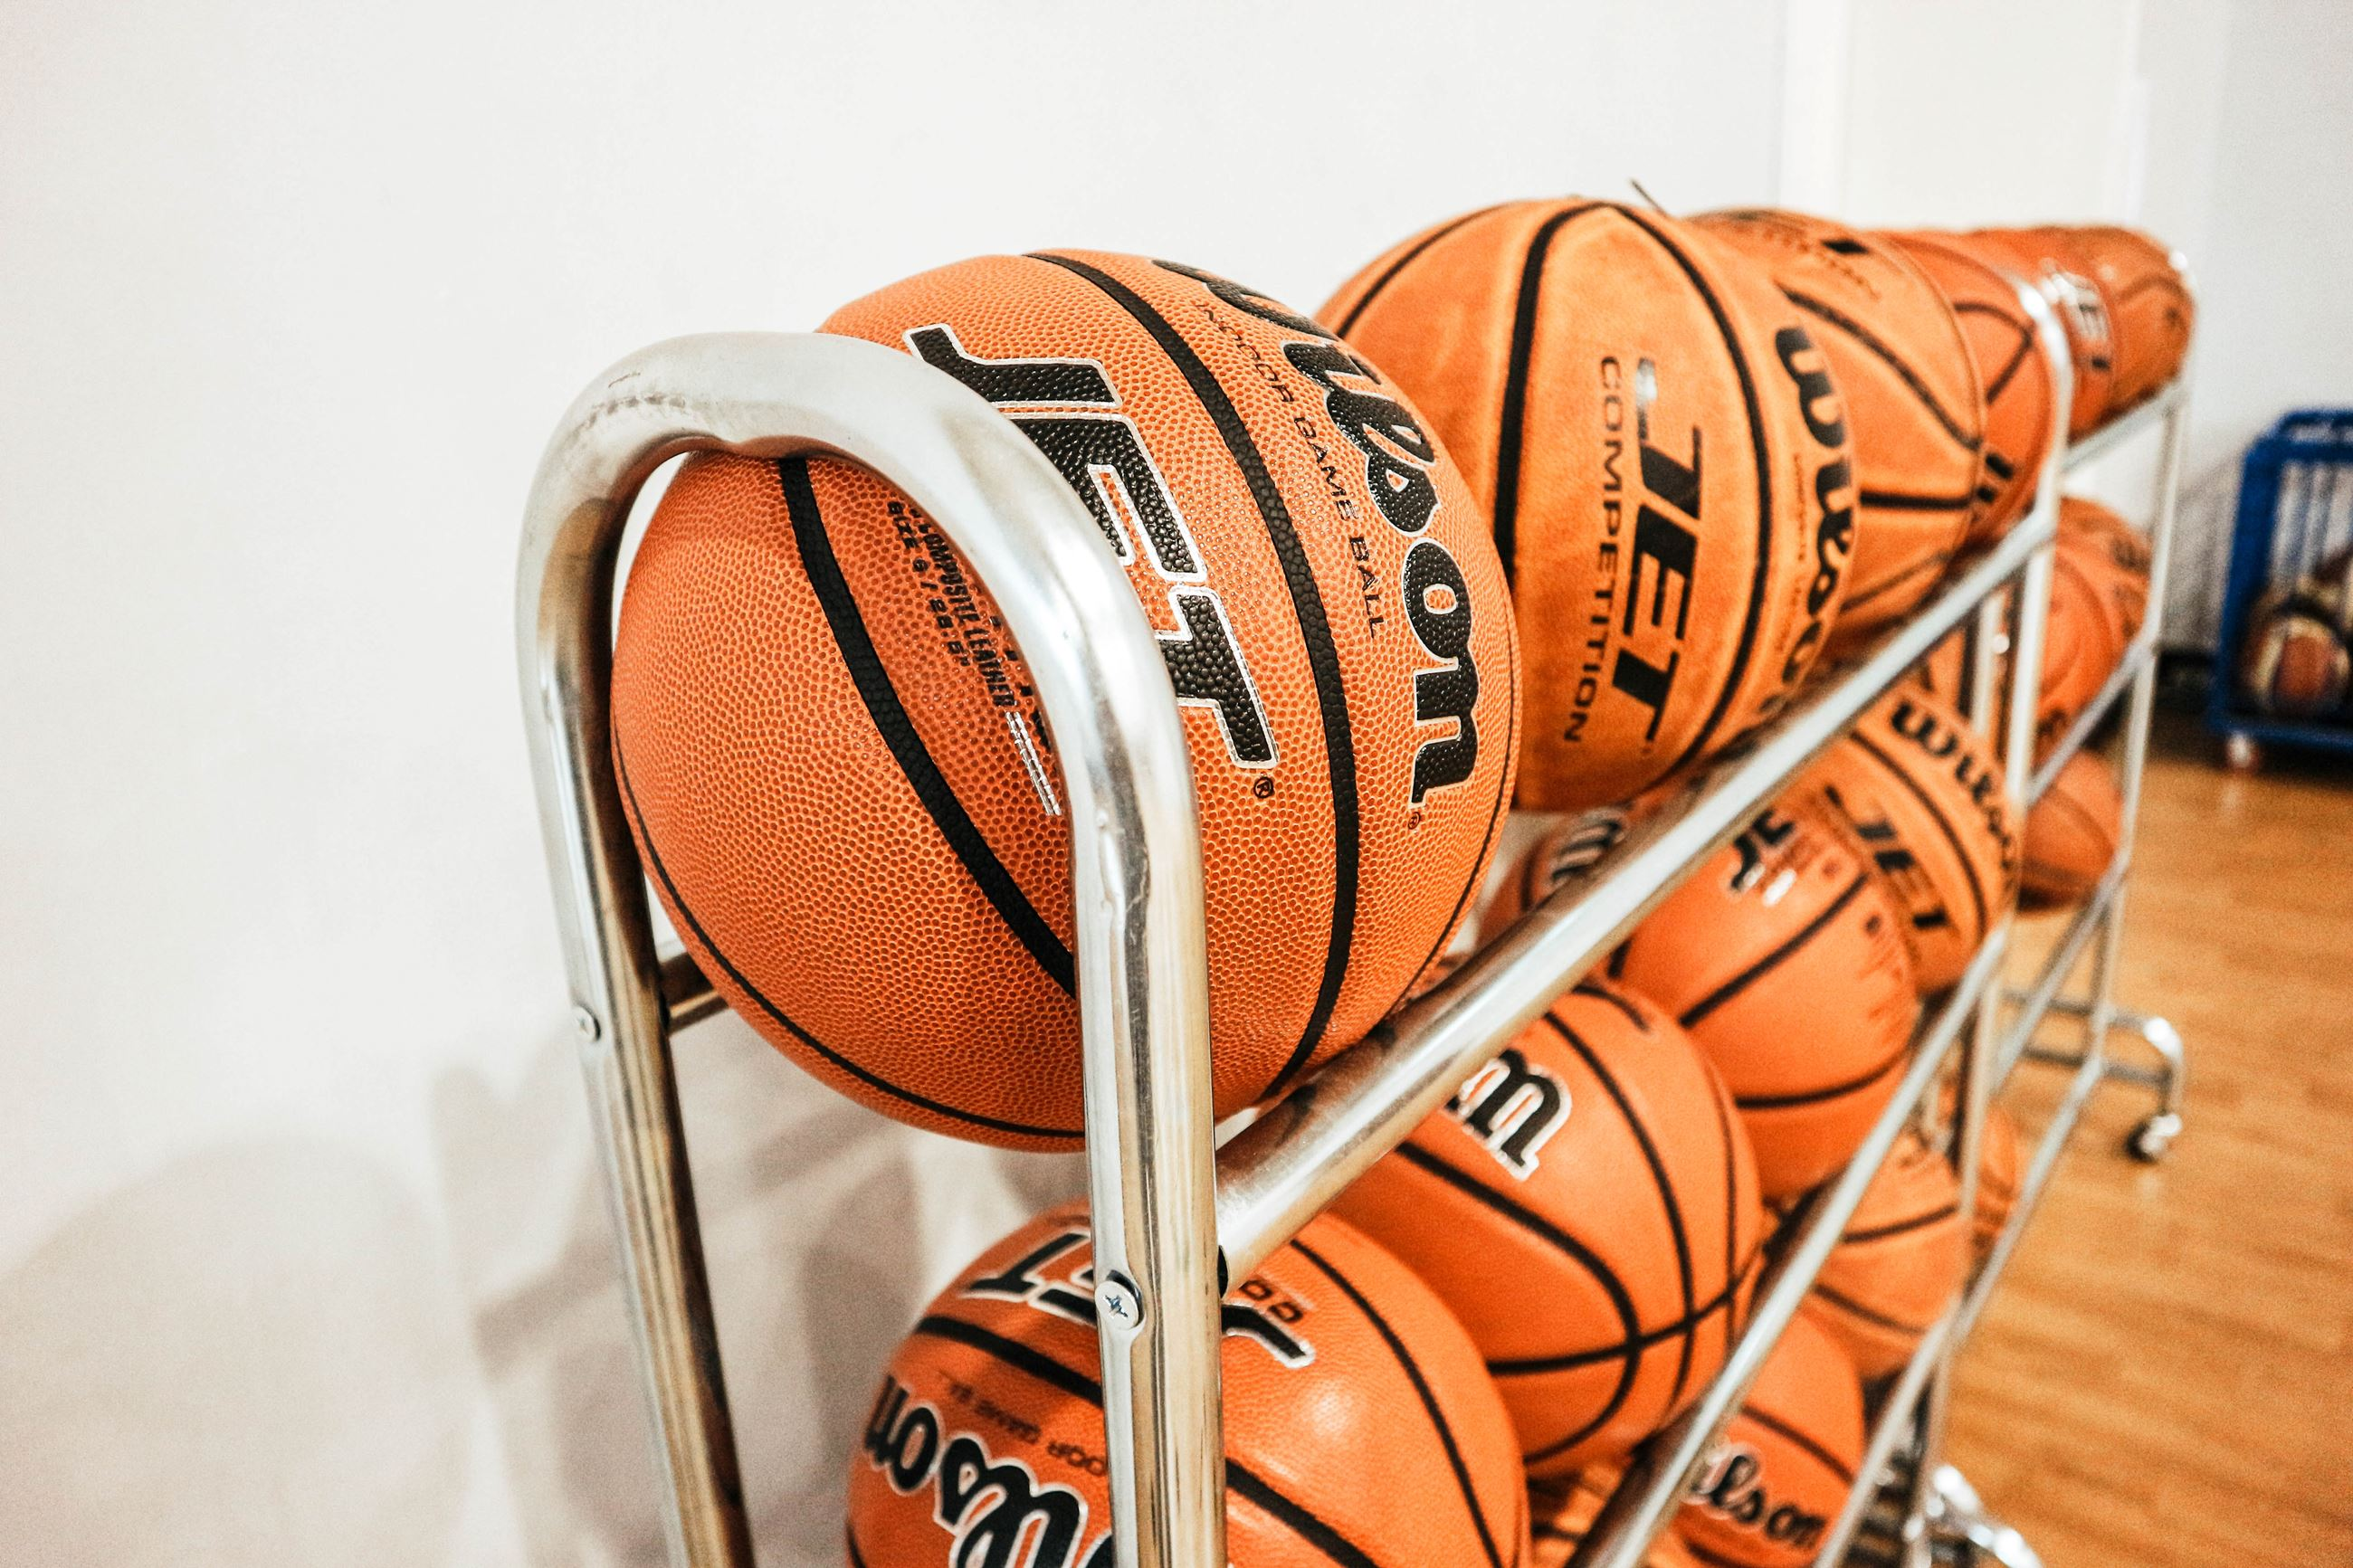 Rack of Basketballs by Finnian Hadiep on Unsplash